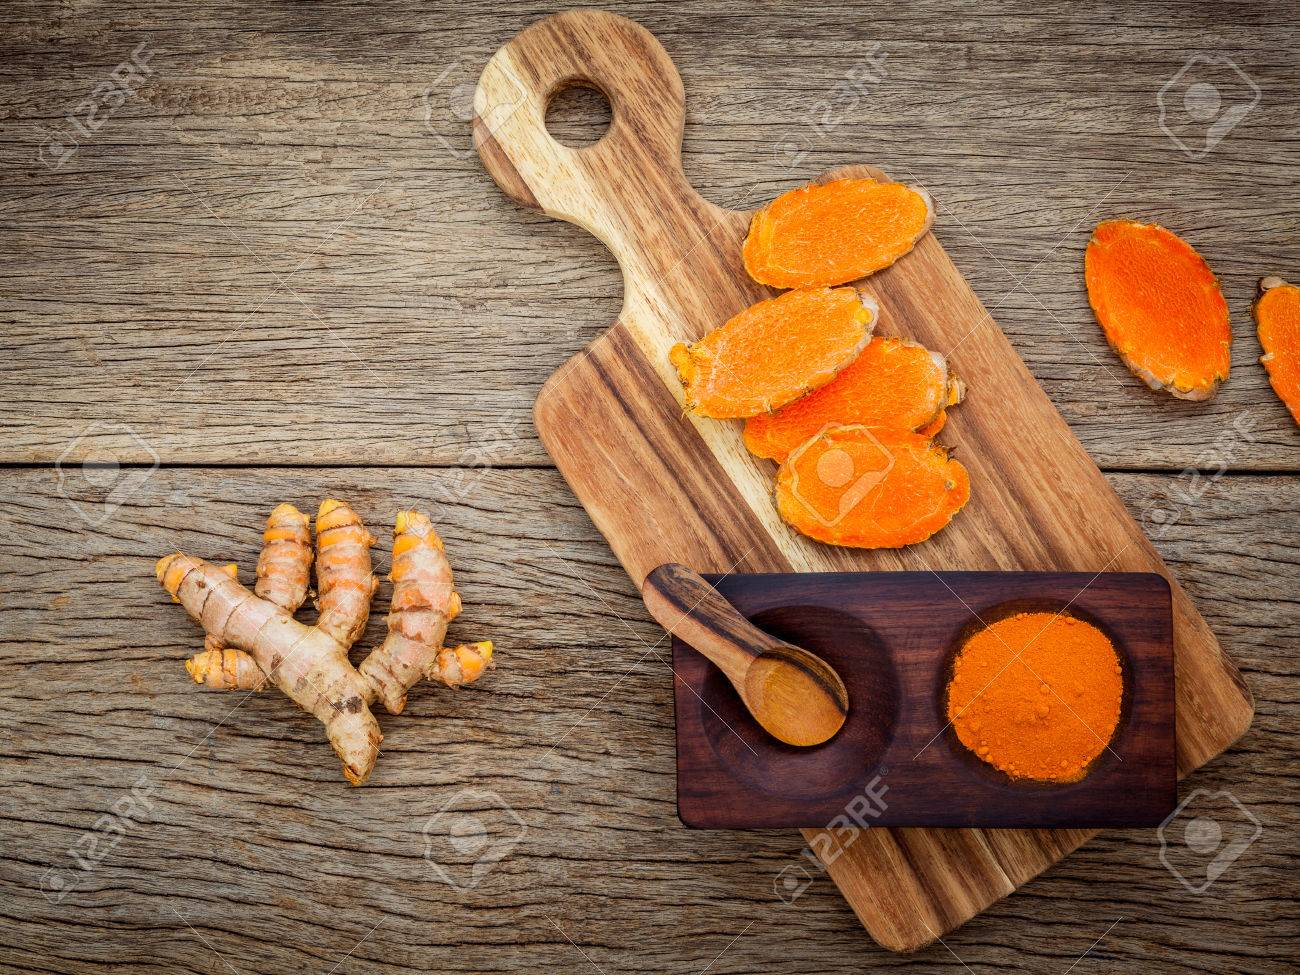 Homemade scrub curcumin powder and curcumin roots with cutting board set up on old wooden background. - 61128619